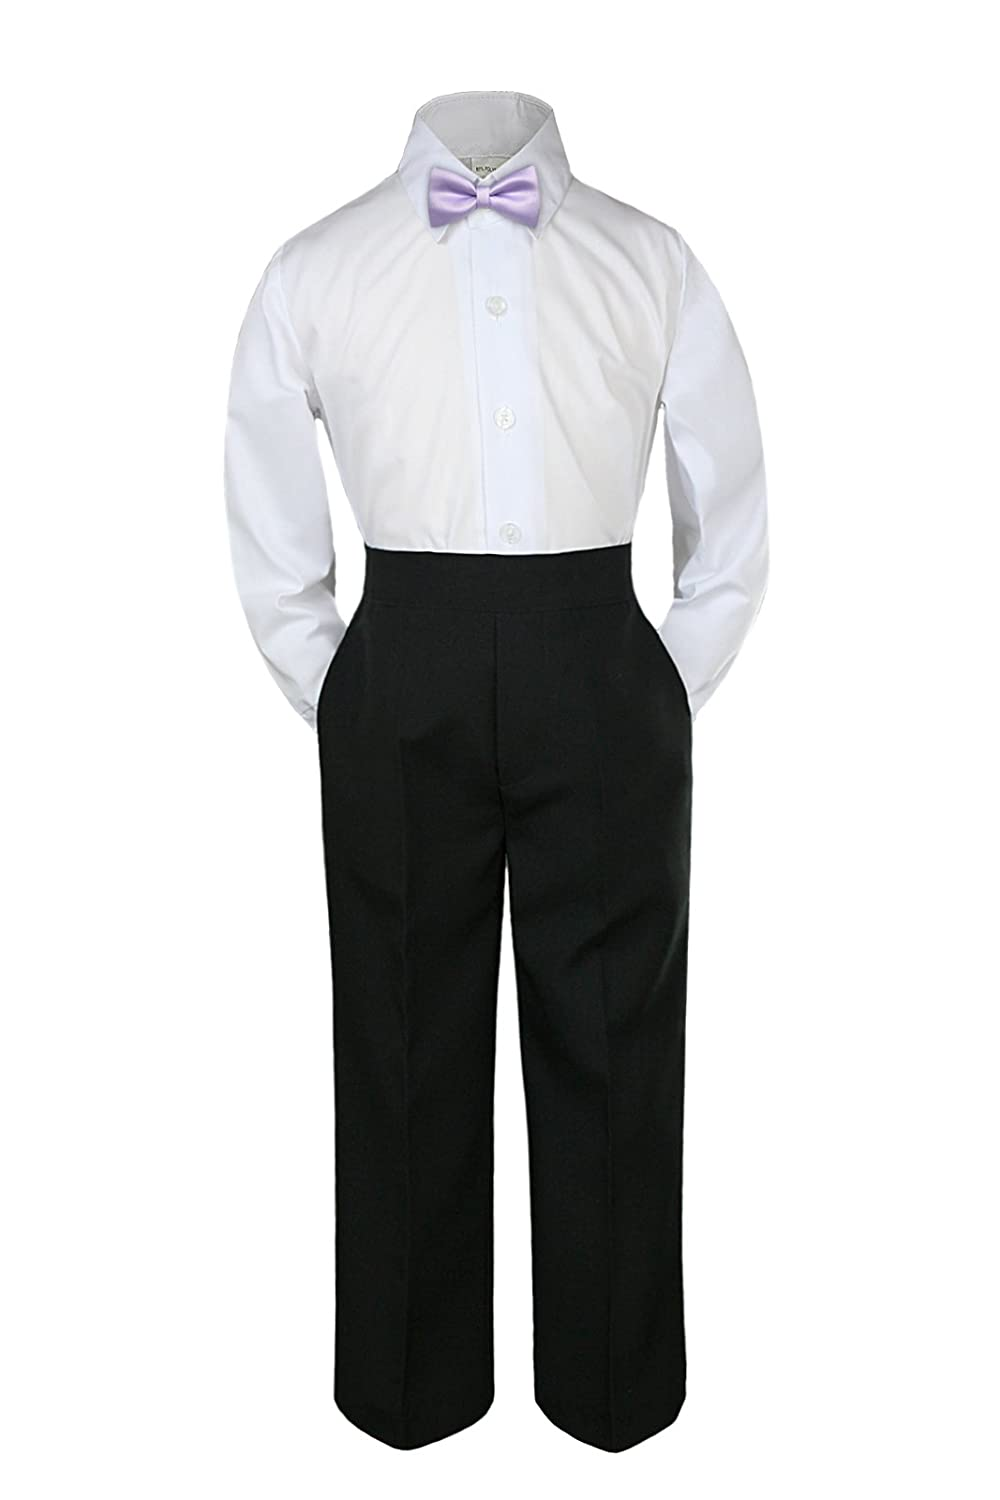 3pc Shirt Black Pants Bow Tie Set Baby Toddler Kid Boy Party Formal Suit 8-20